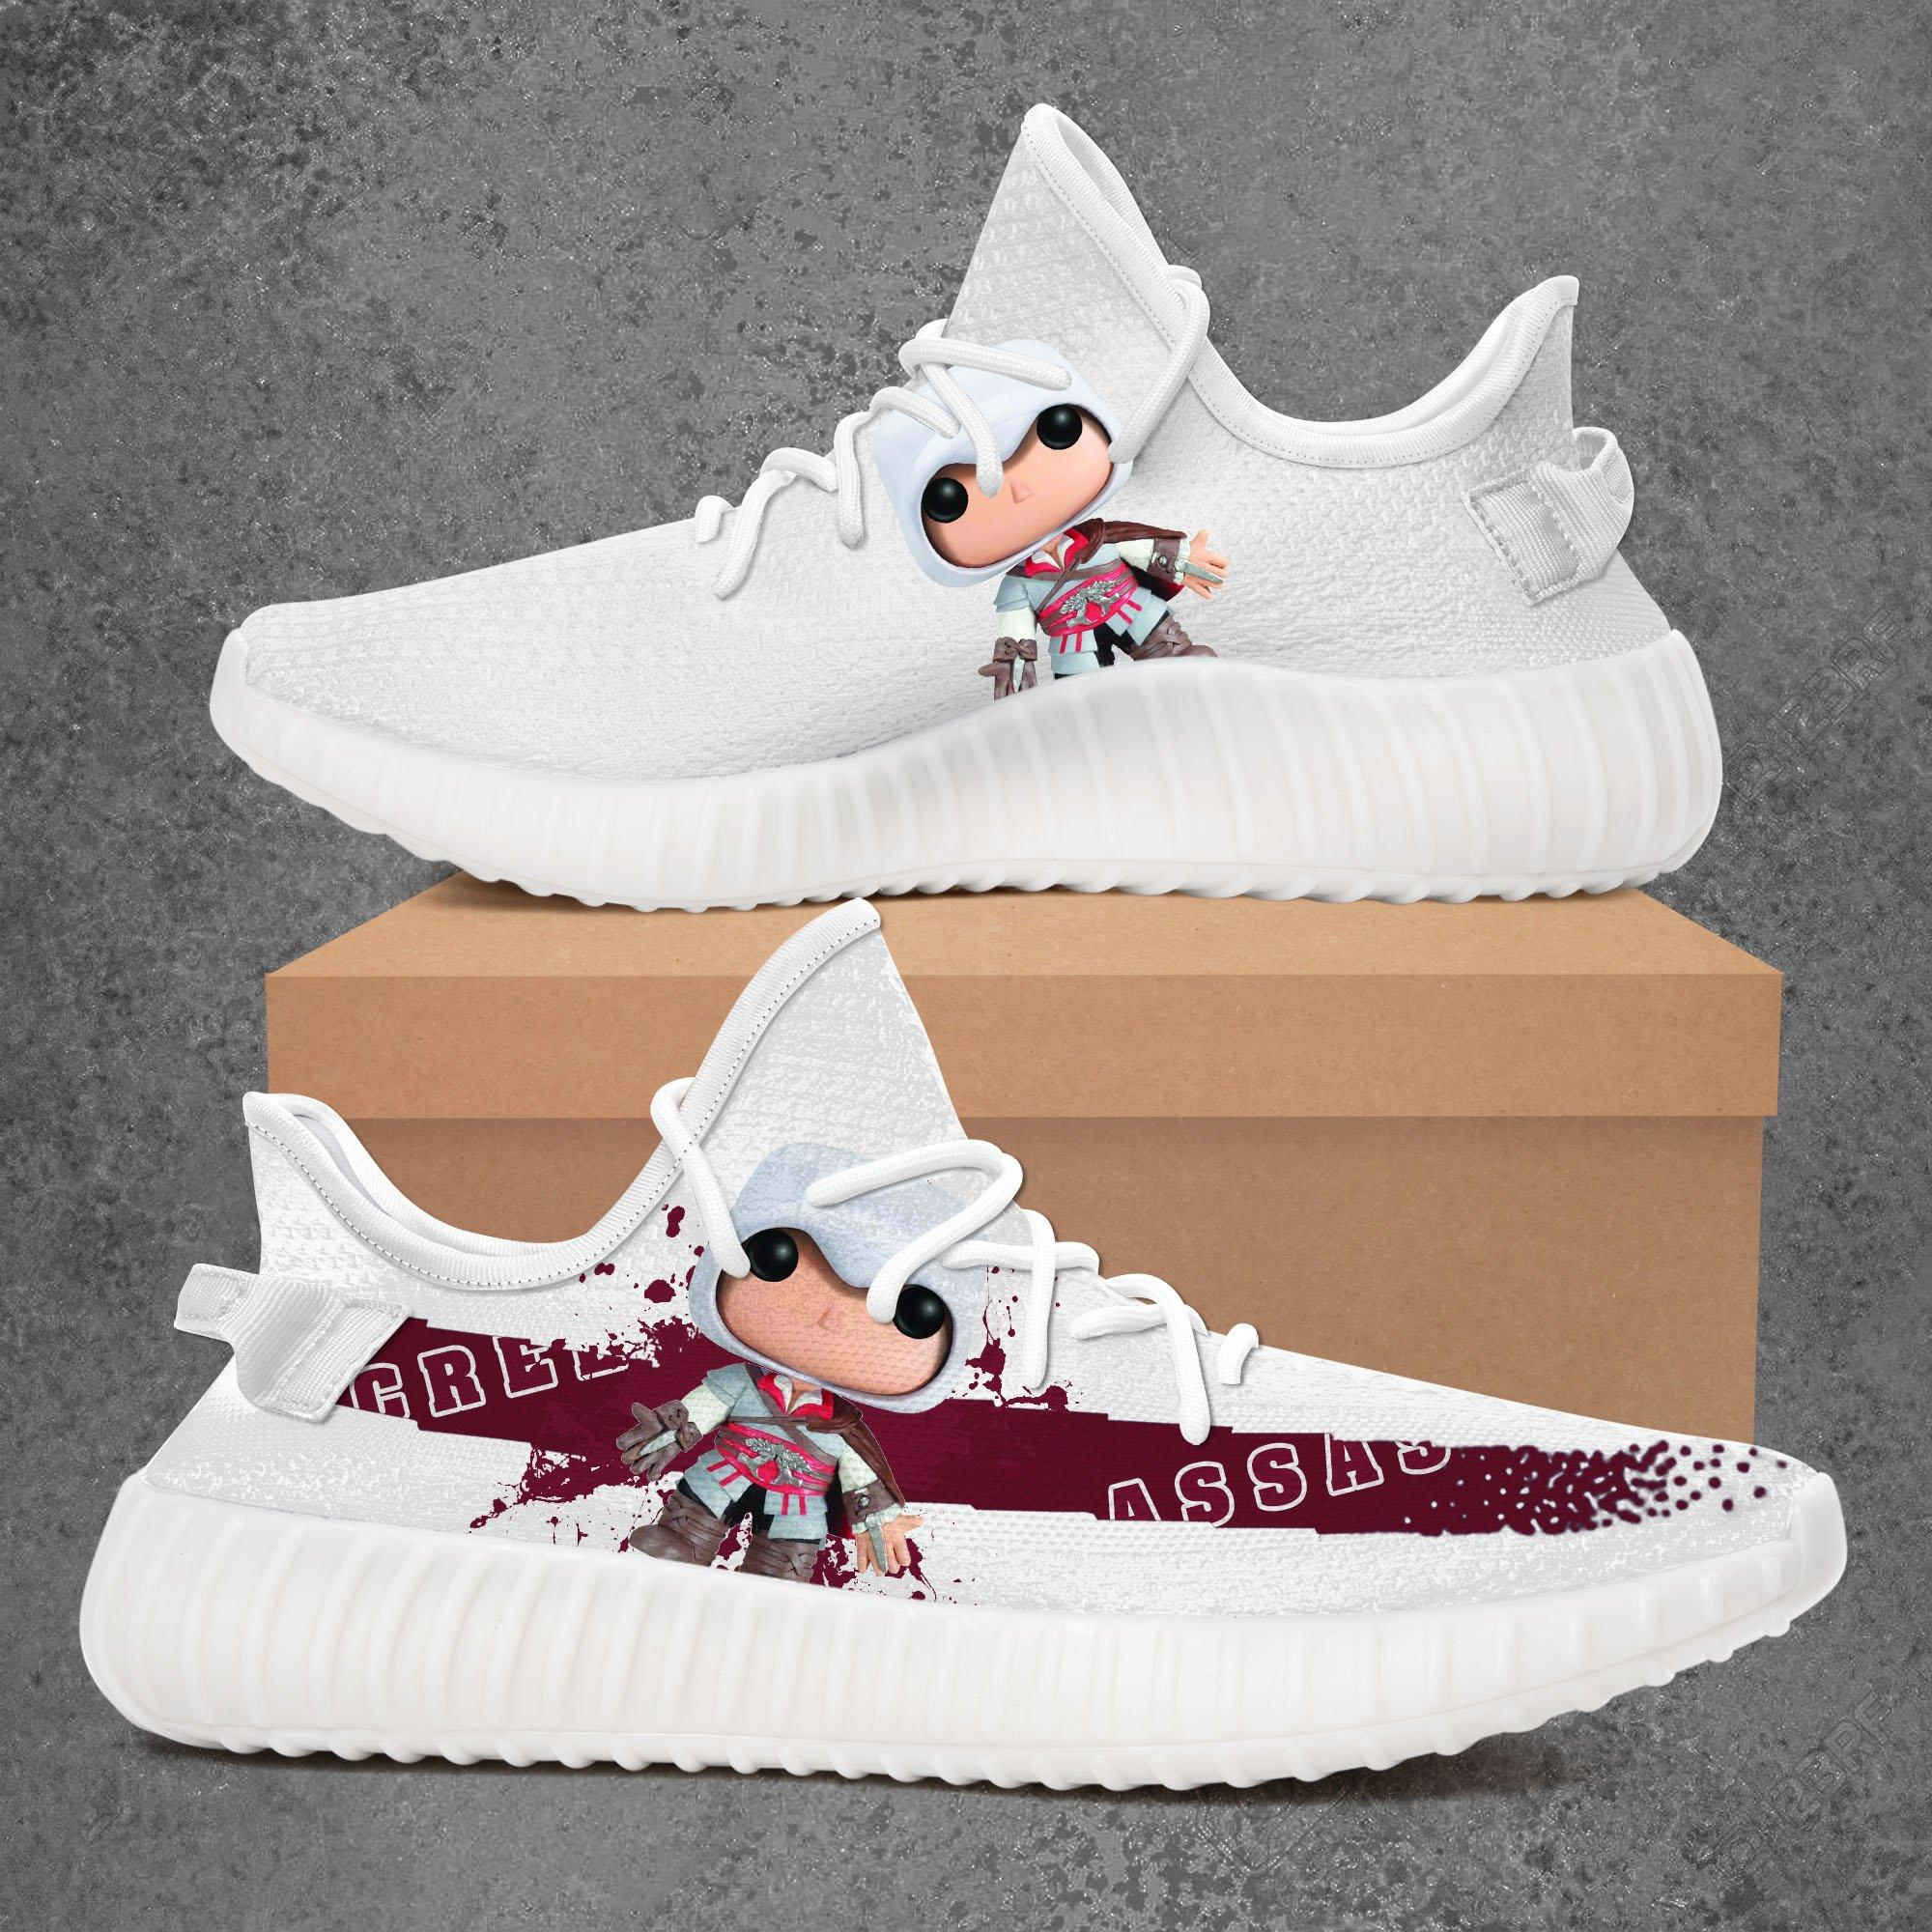 Assassin S Creed Yeezy Boost 350 V2 Shoes Top Branding Trends 2019